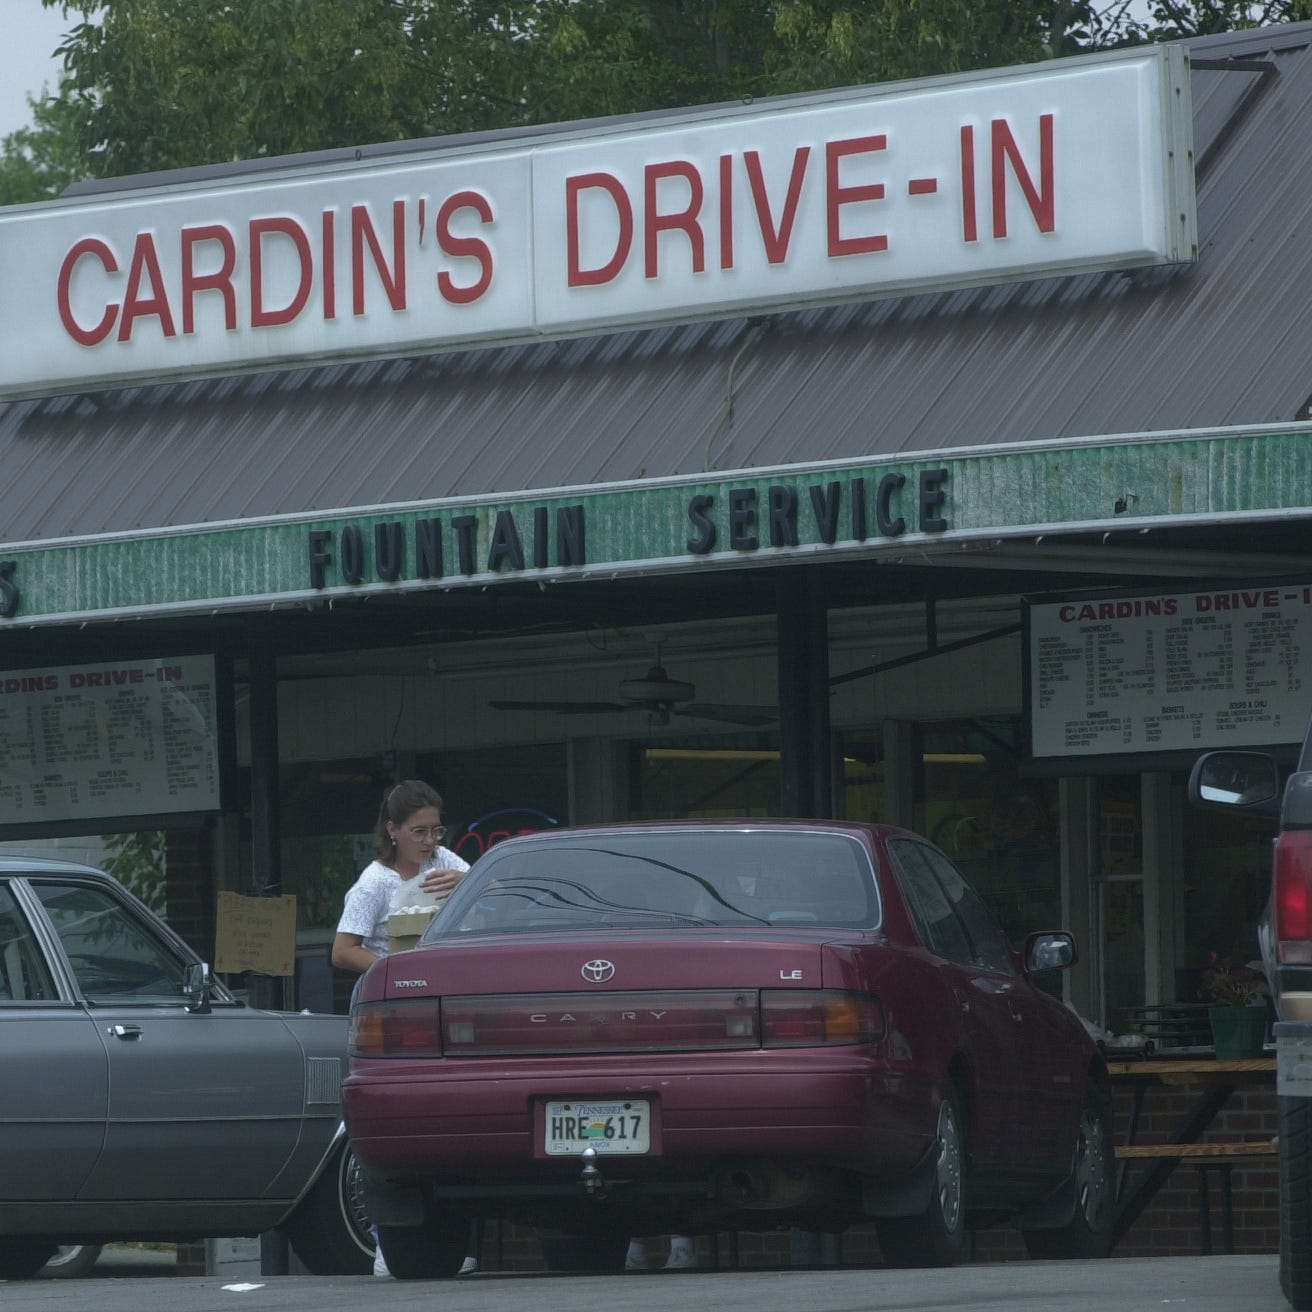 Cardin's Drive-In, a Carter Community landmark, is being sold